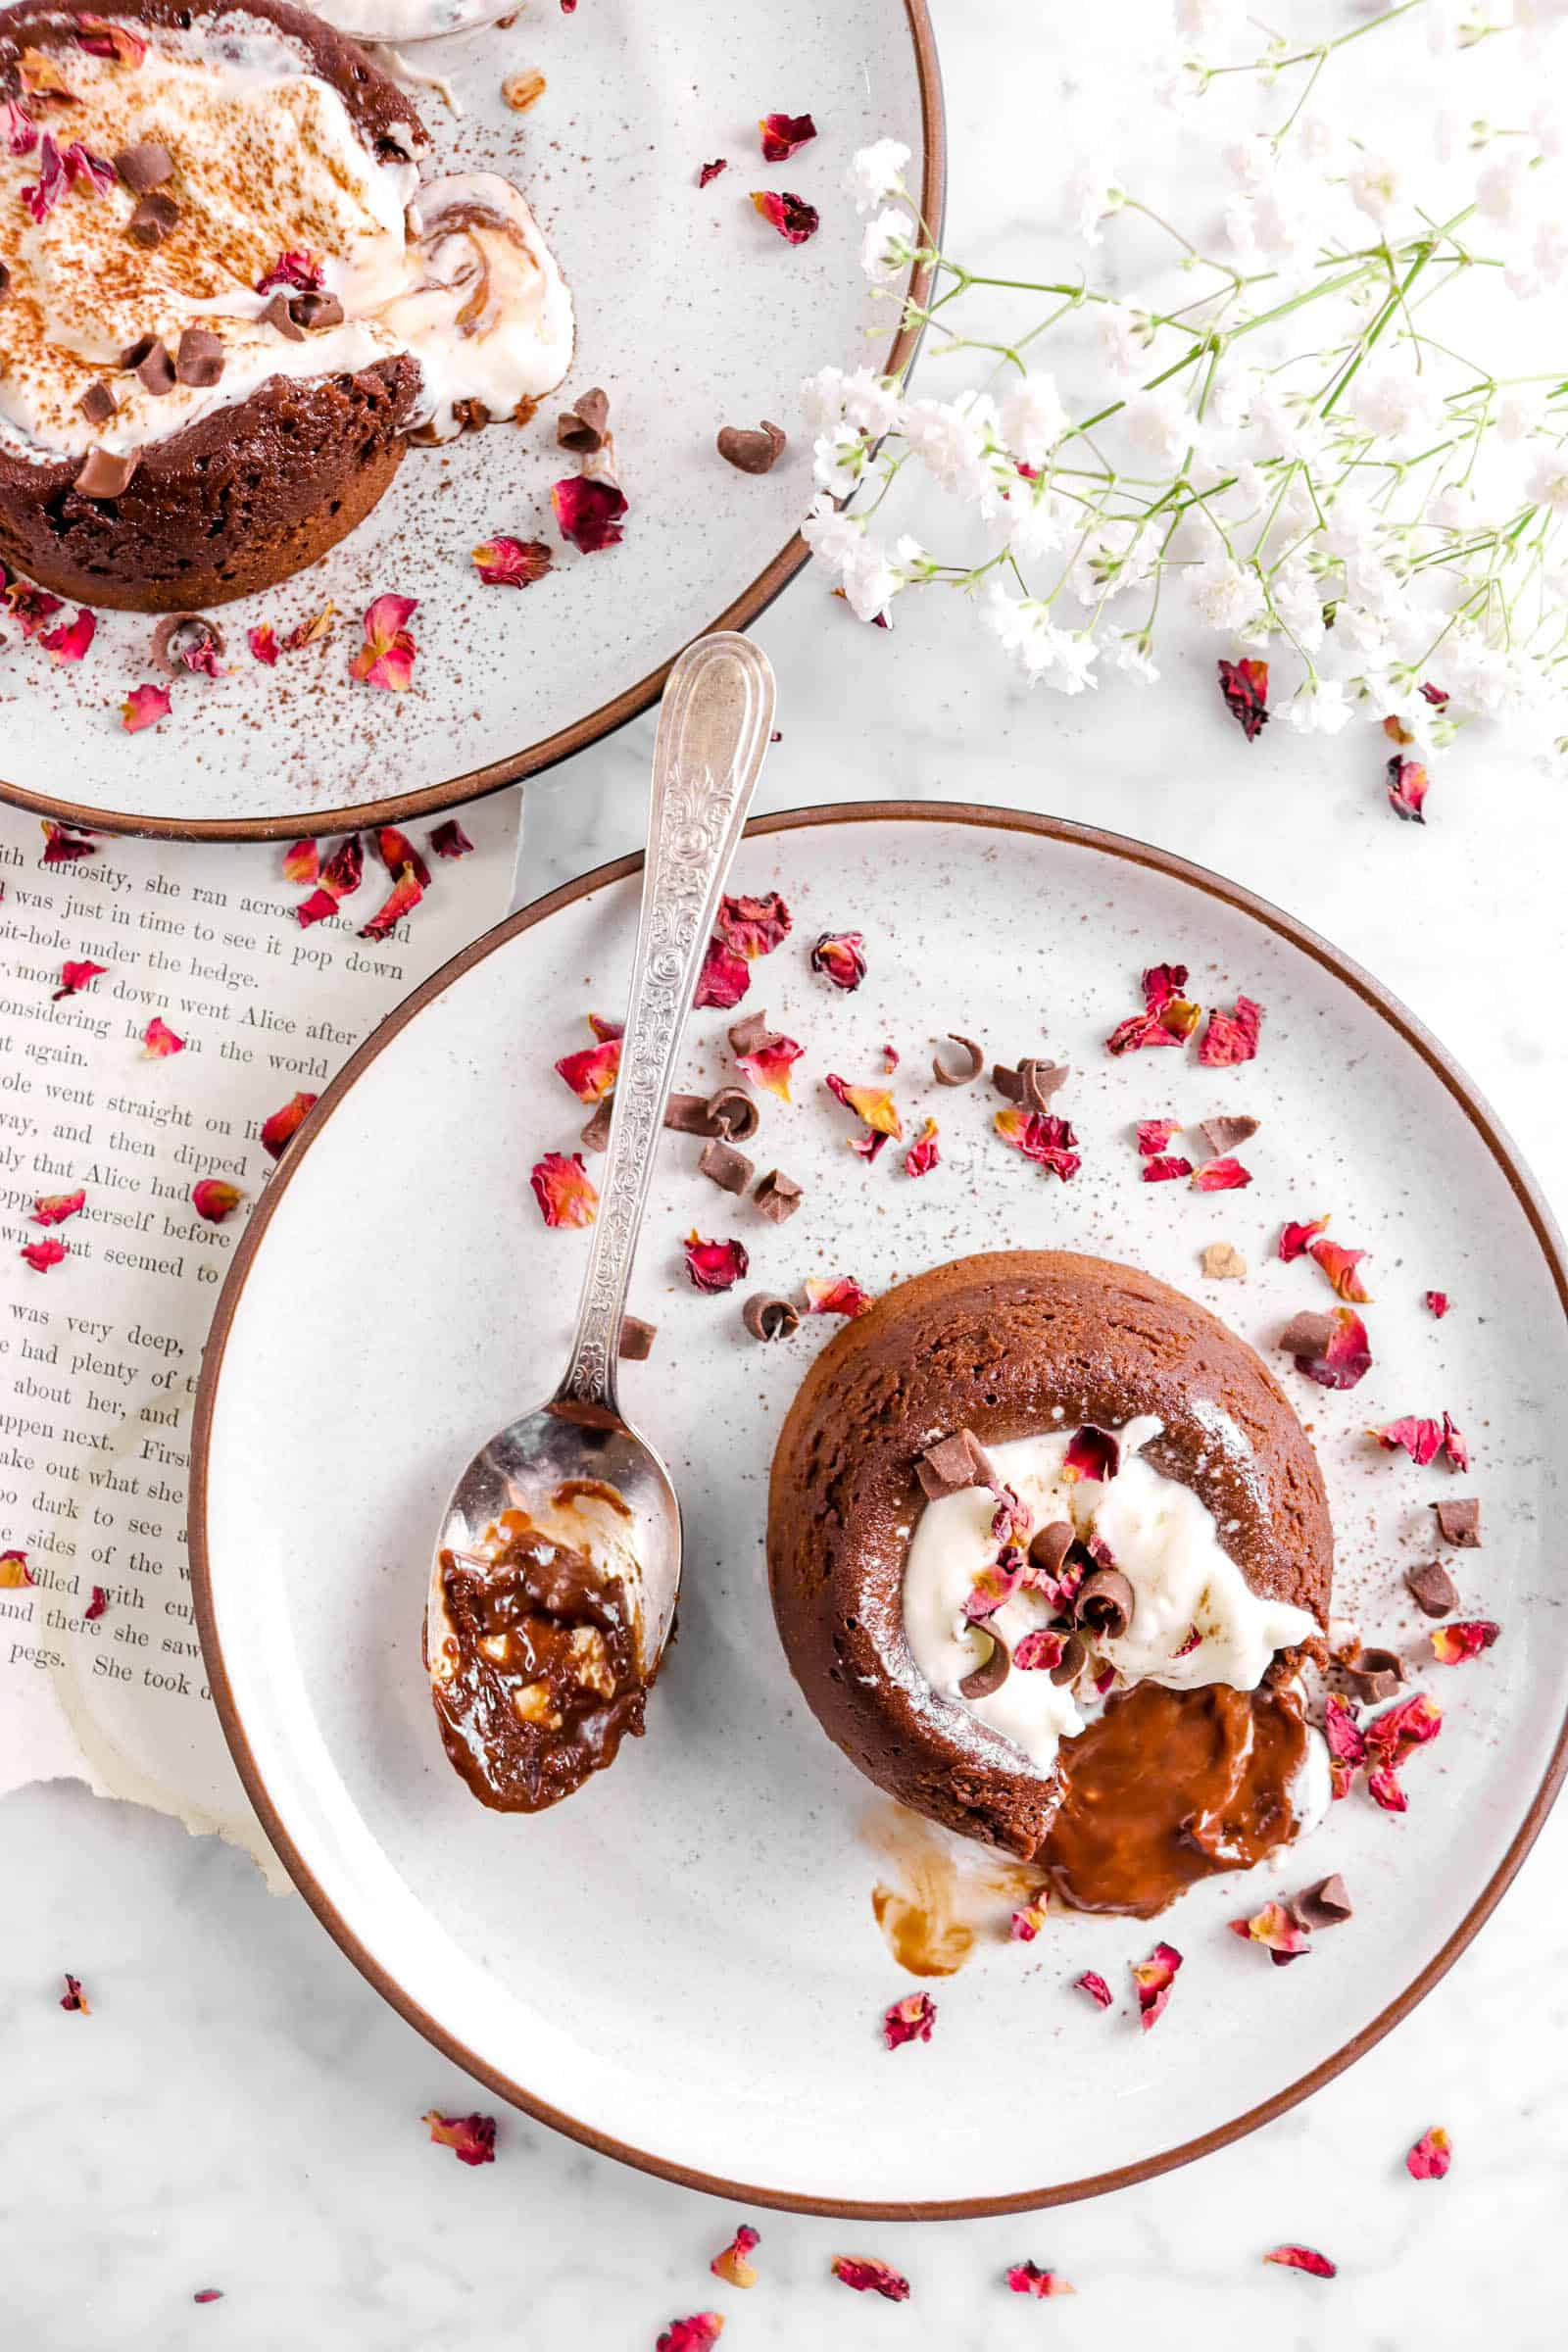 overhead shot of two chocolate lava cakes with a chocolate covered spoon, white flowers, and rose petals